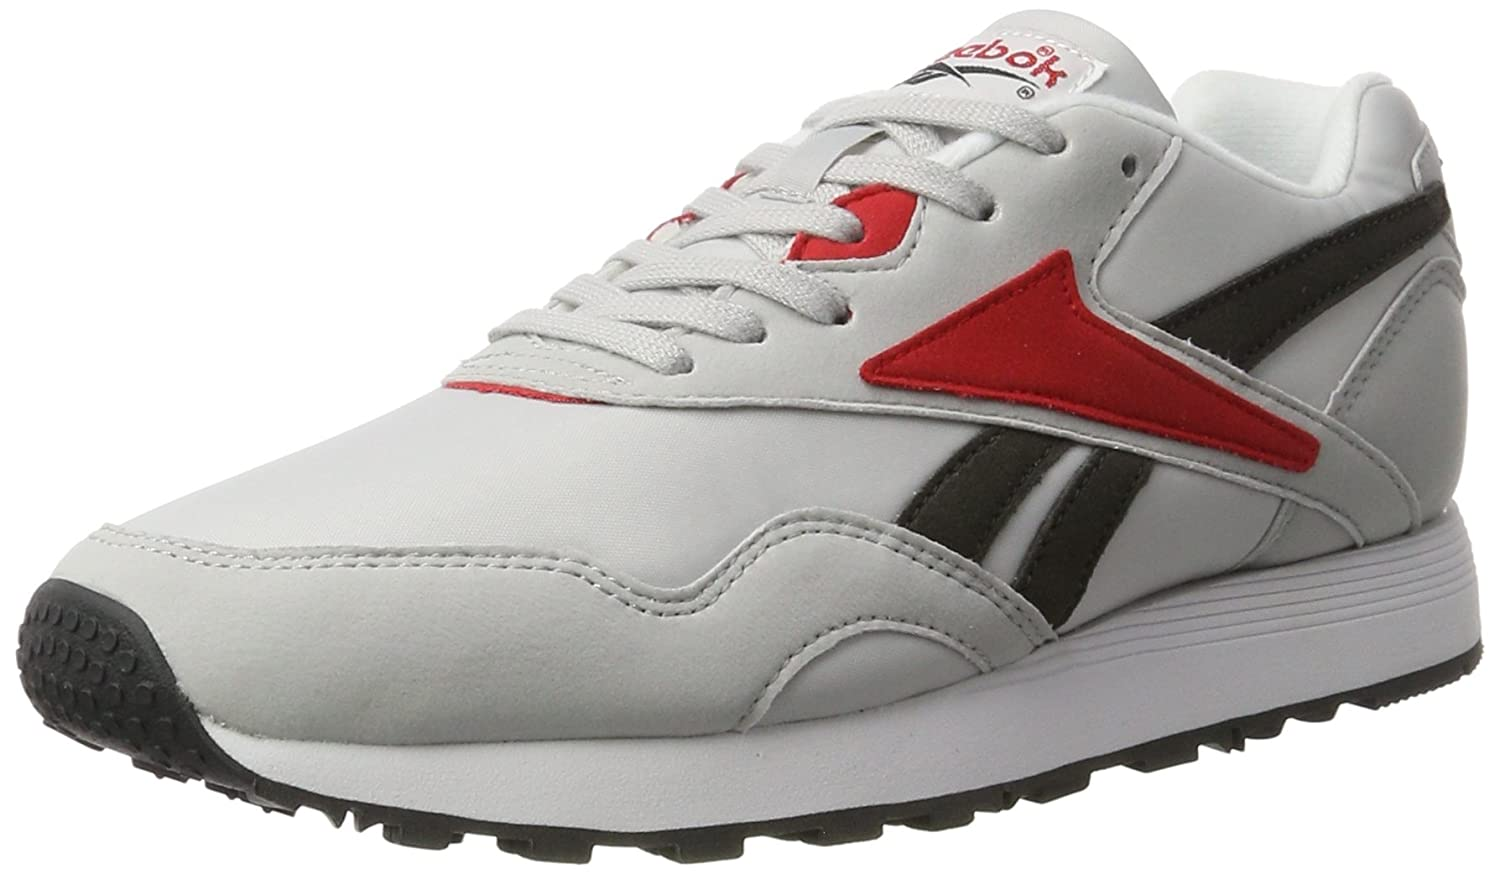 Reebok Herren Rapide Mc90 Sneaker  41 EU|Grau (Lgh Solid Grey/Coal/Primal Red/White/Black)